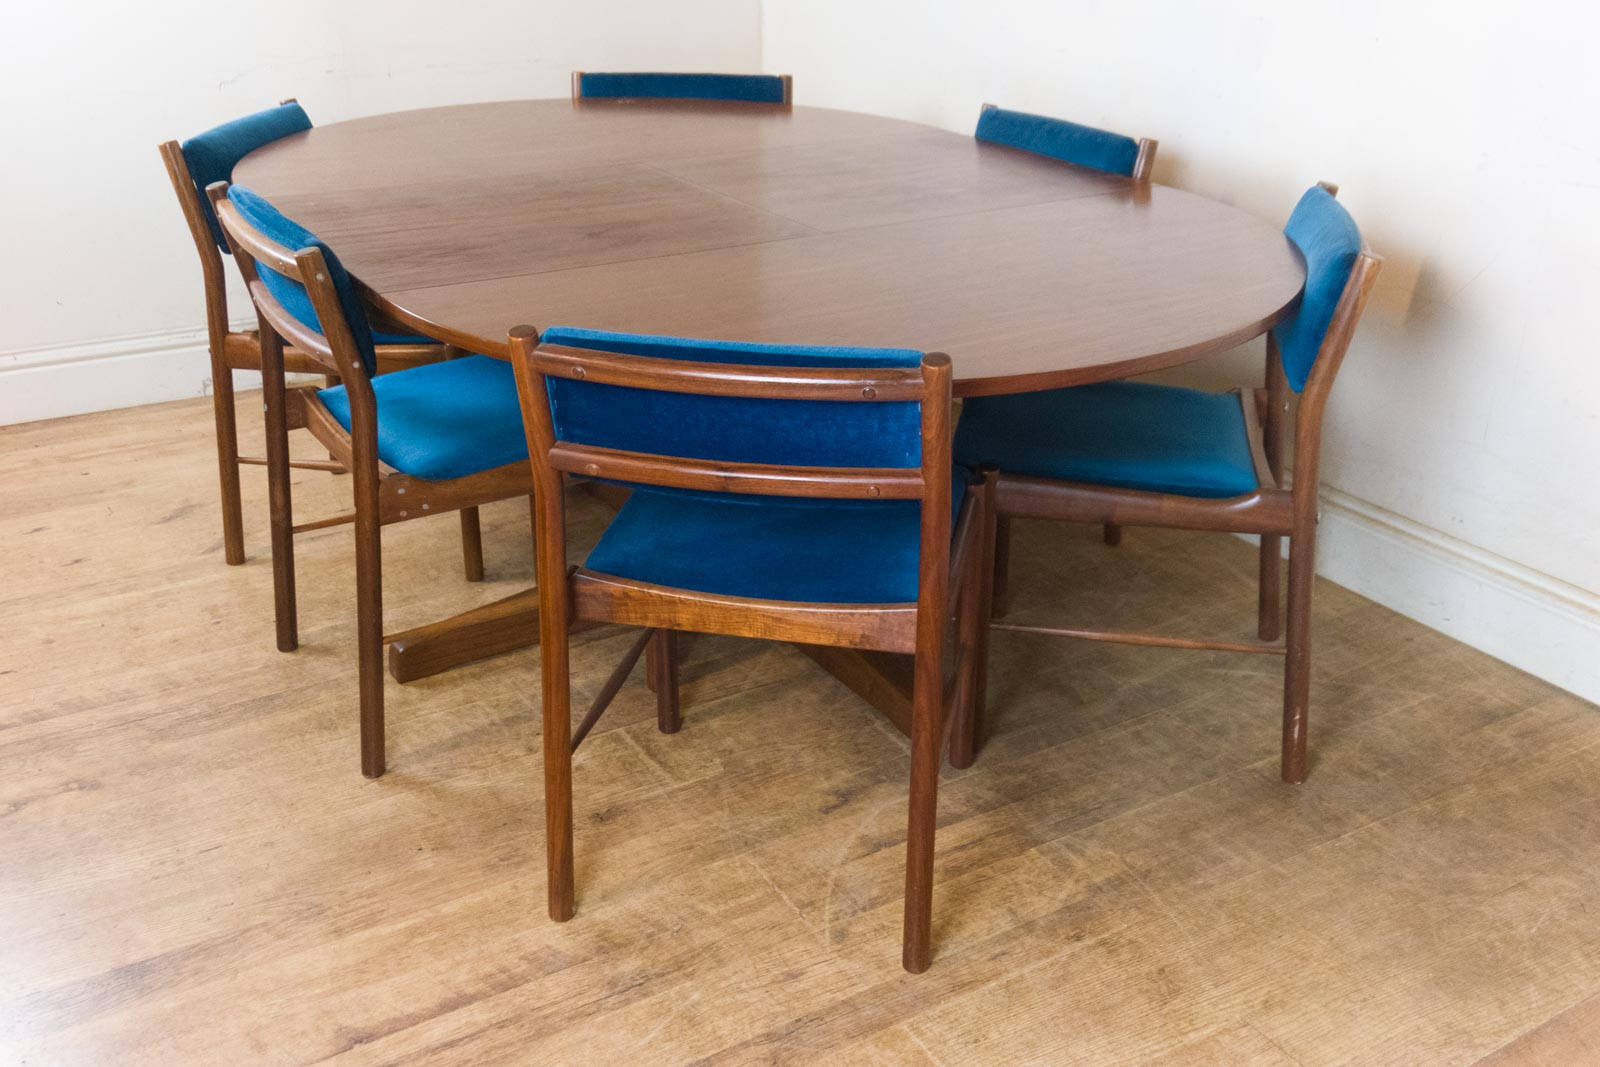 Bespoke Dining Tables And Chairs Dining Tables And  : HV160702 4 from honansantiques.com size 1600 x 1067 jpeg 208kB